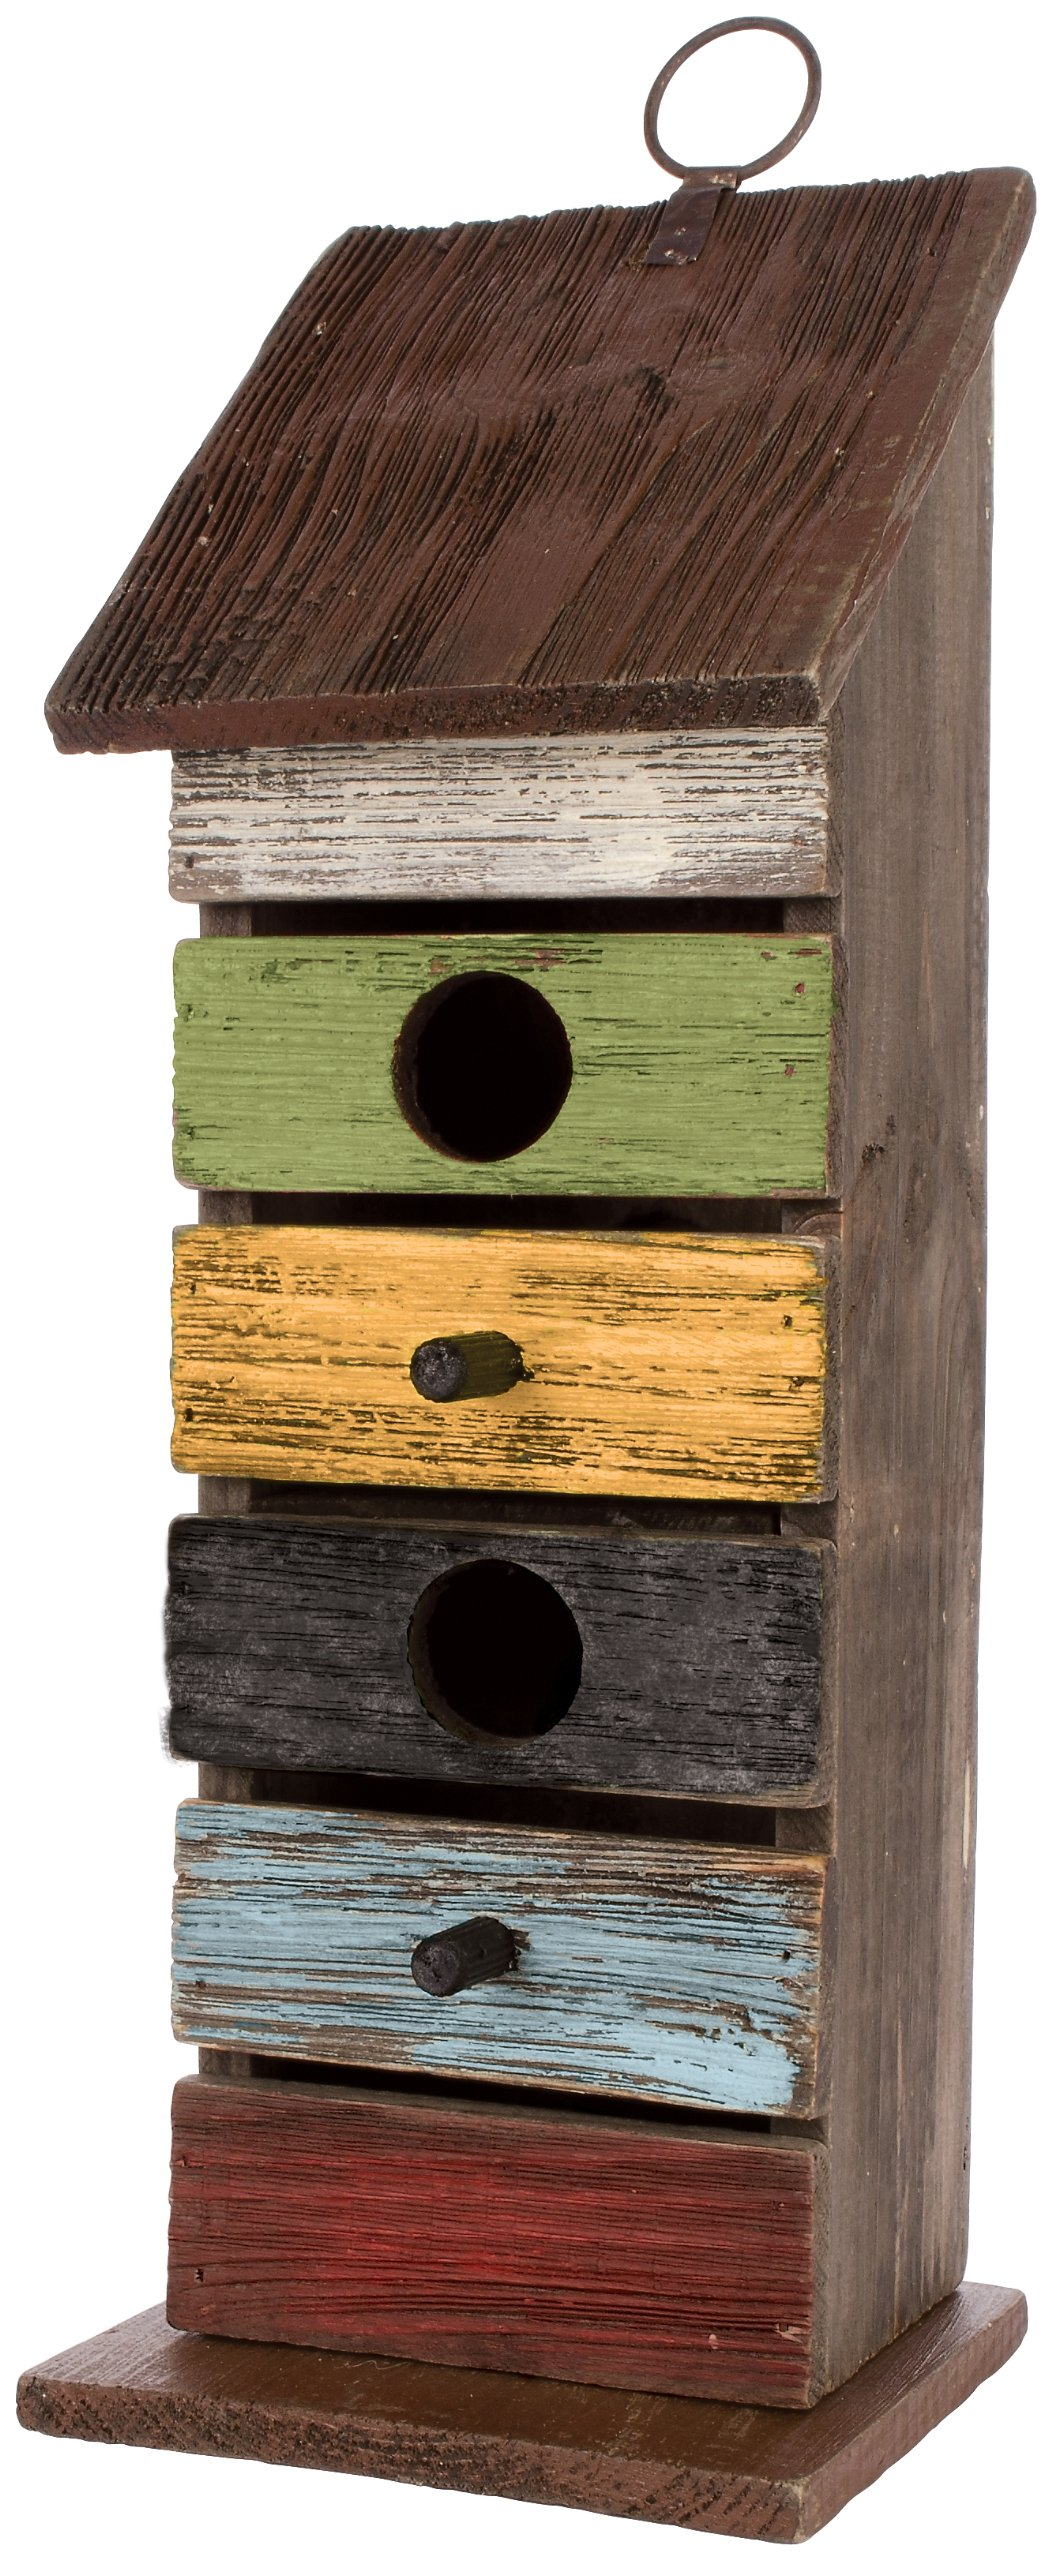 Carson Home Accents Vintage Tall Birdhouse, 14.25-Inch